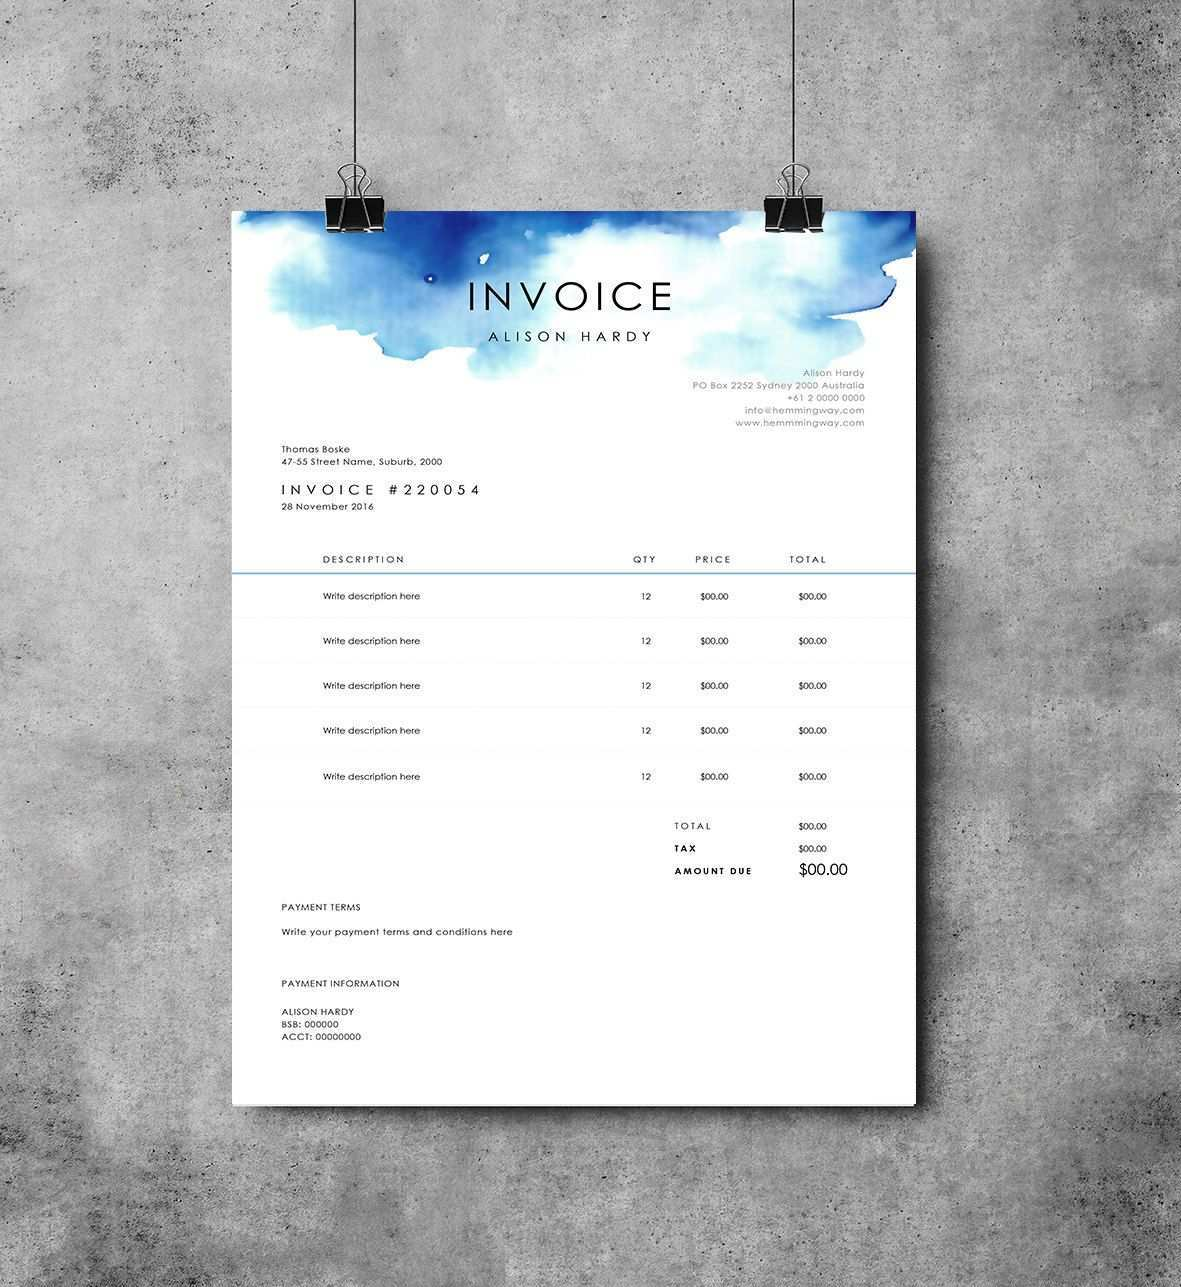 Invoice Template Receipt Ms Word Template Instant Download Invoice Invoice Design Invoice Template Photography Invoice Template